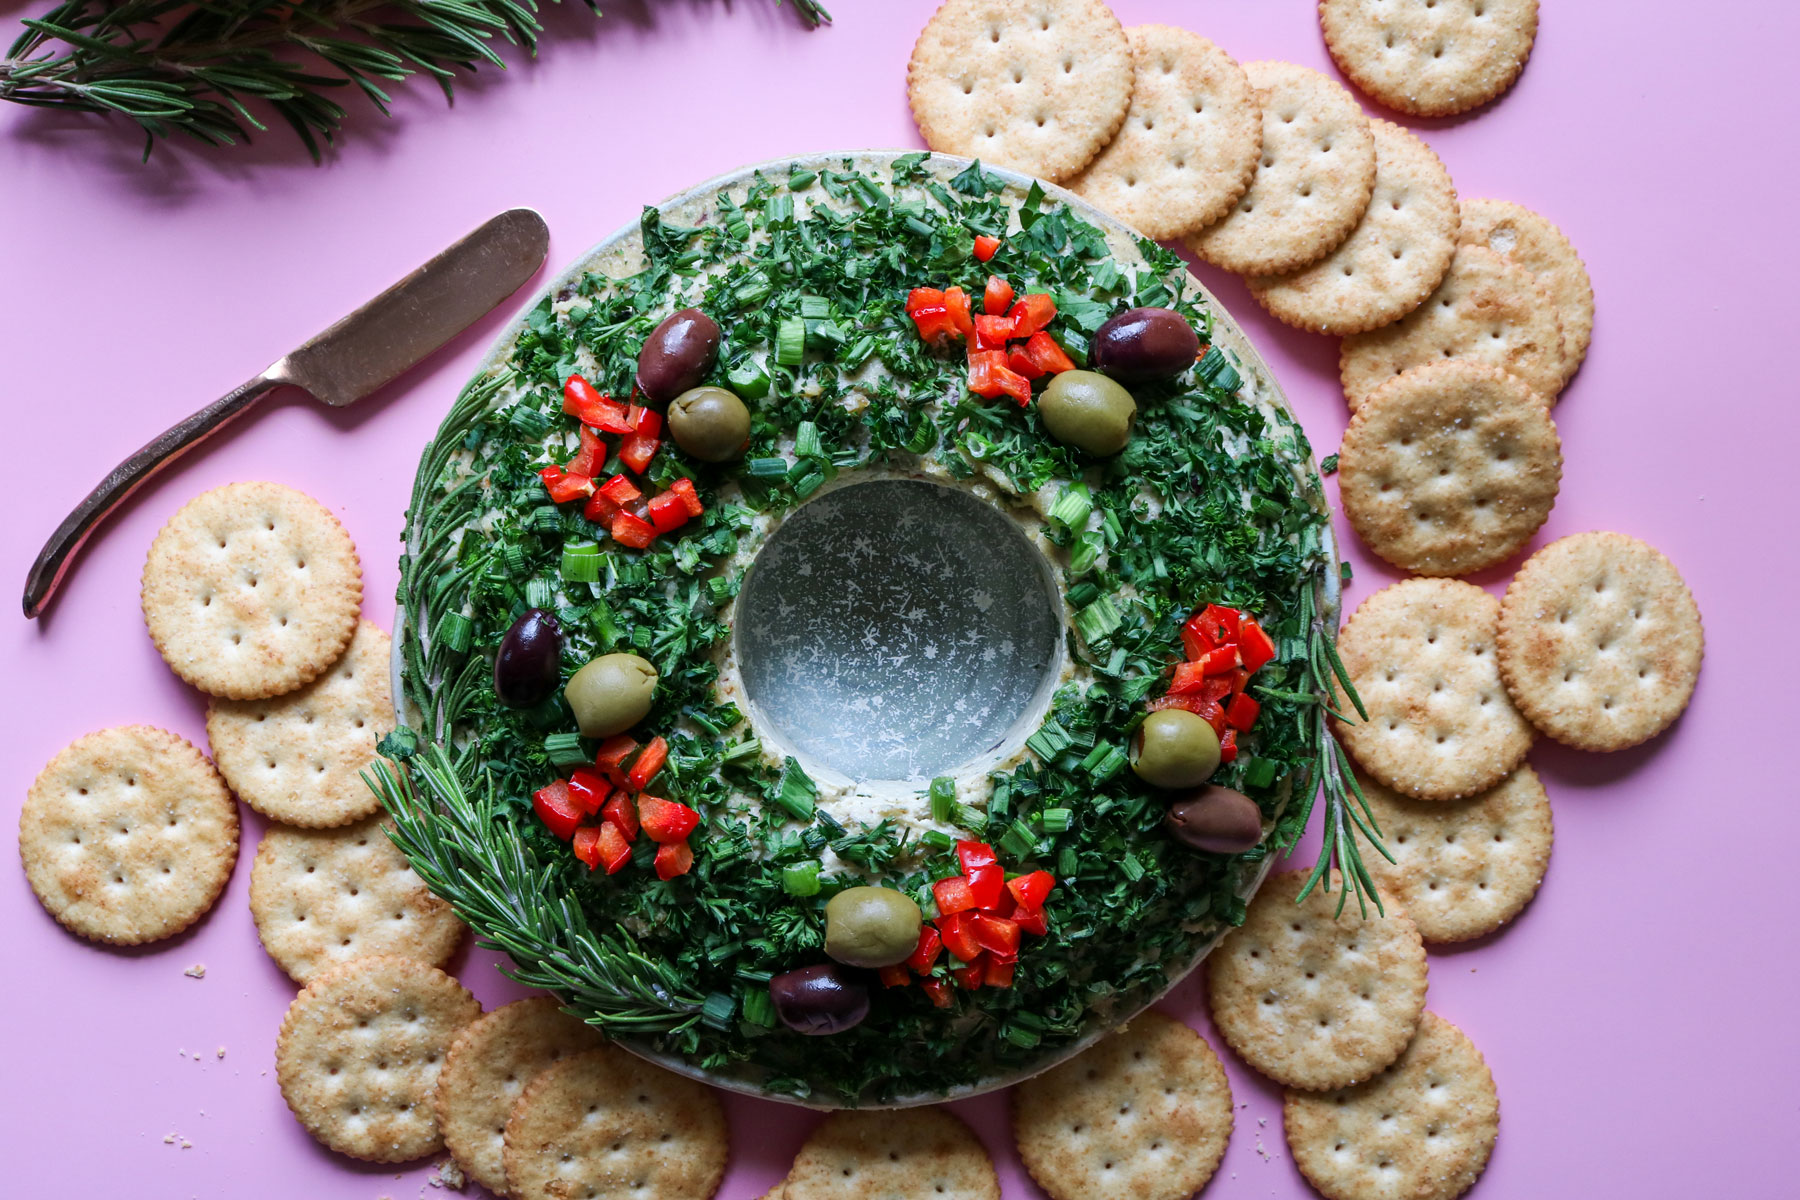 Savory Vegan Christmas Cheese Ball Wreath Recipe